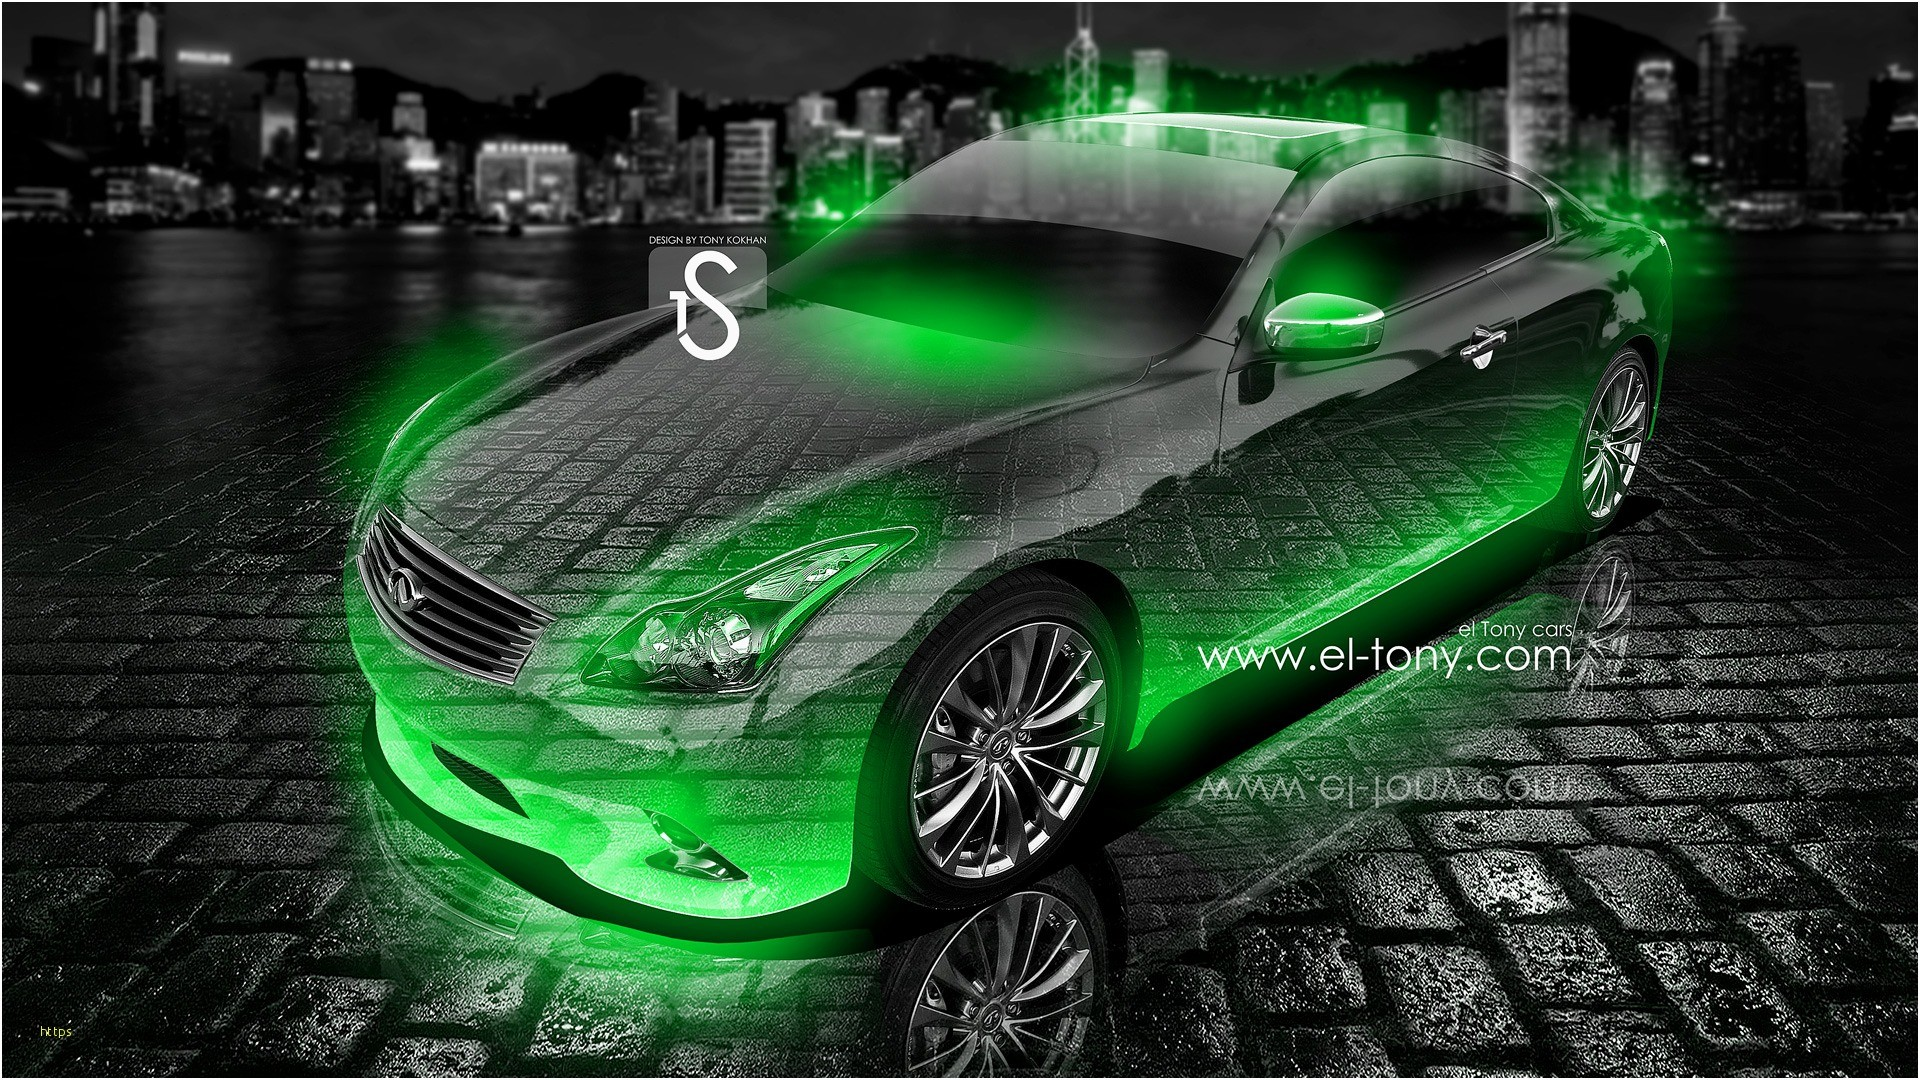 1920x1080 Neon Green Wallpaper Inspirational Black and Neon Green Wallpaper  Wallpapersafari